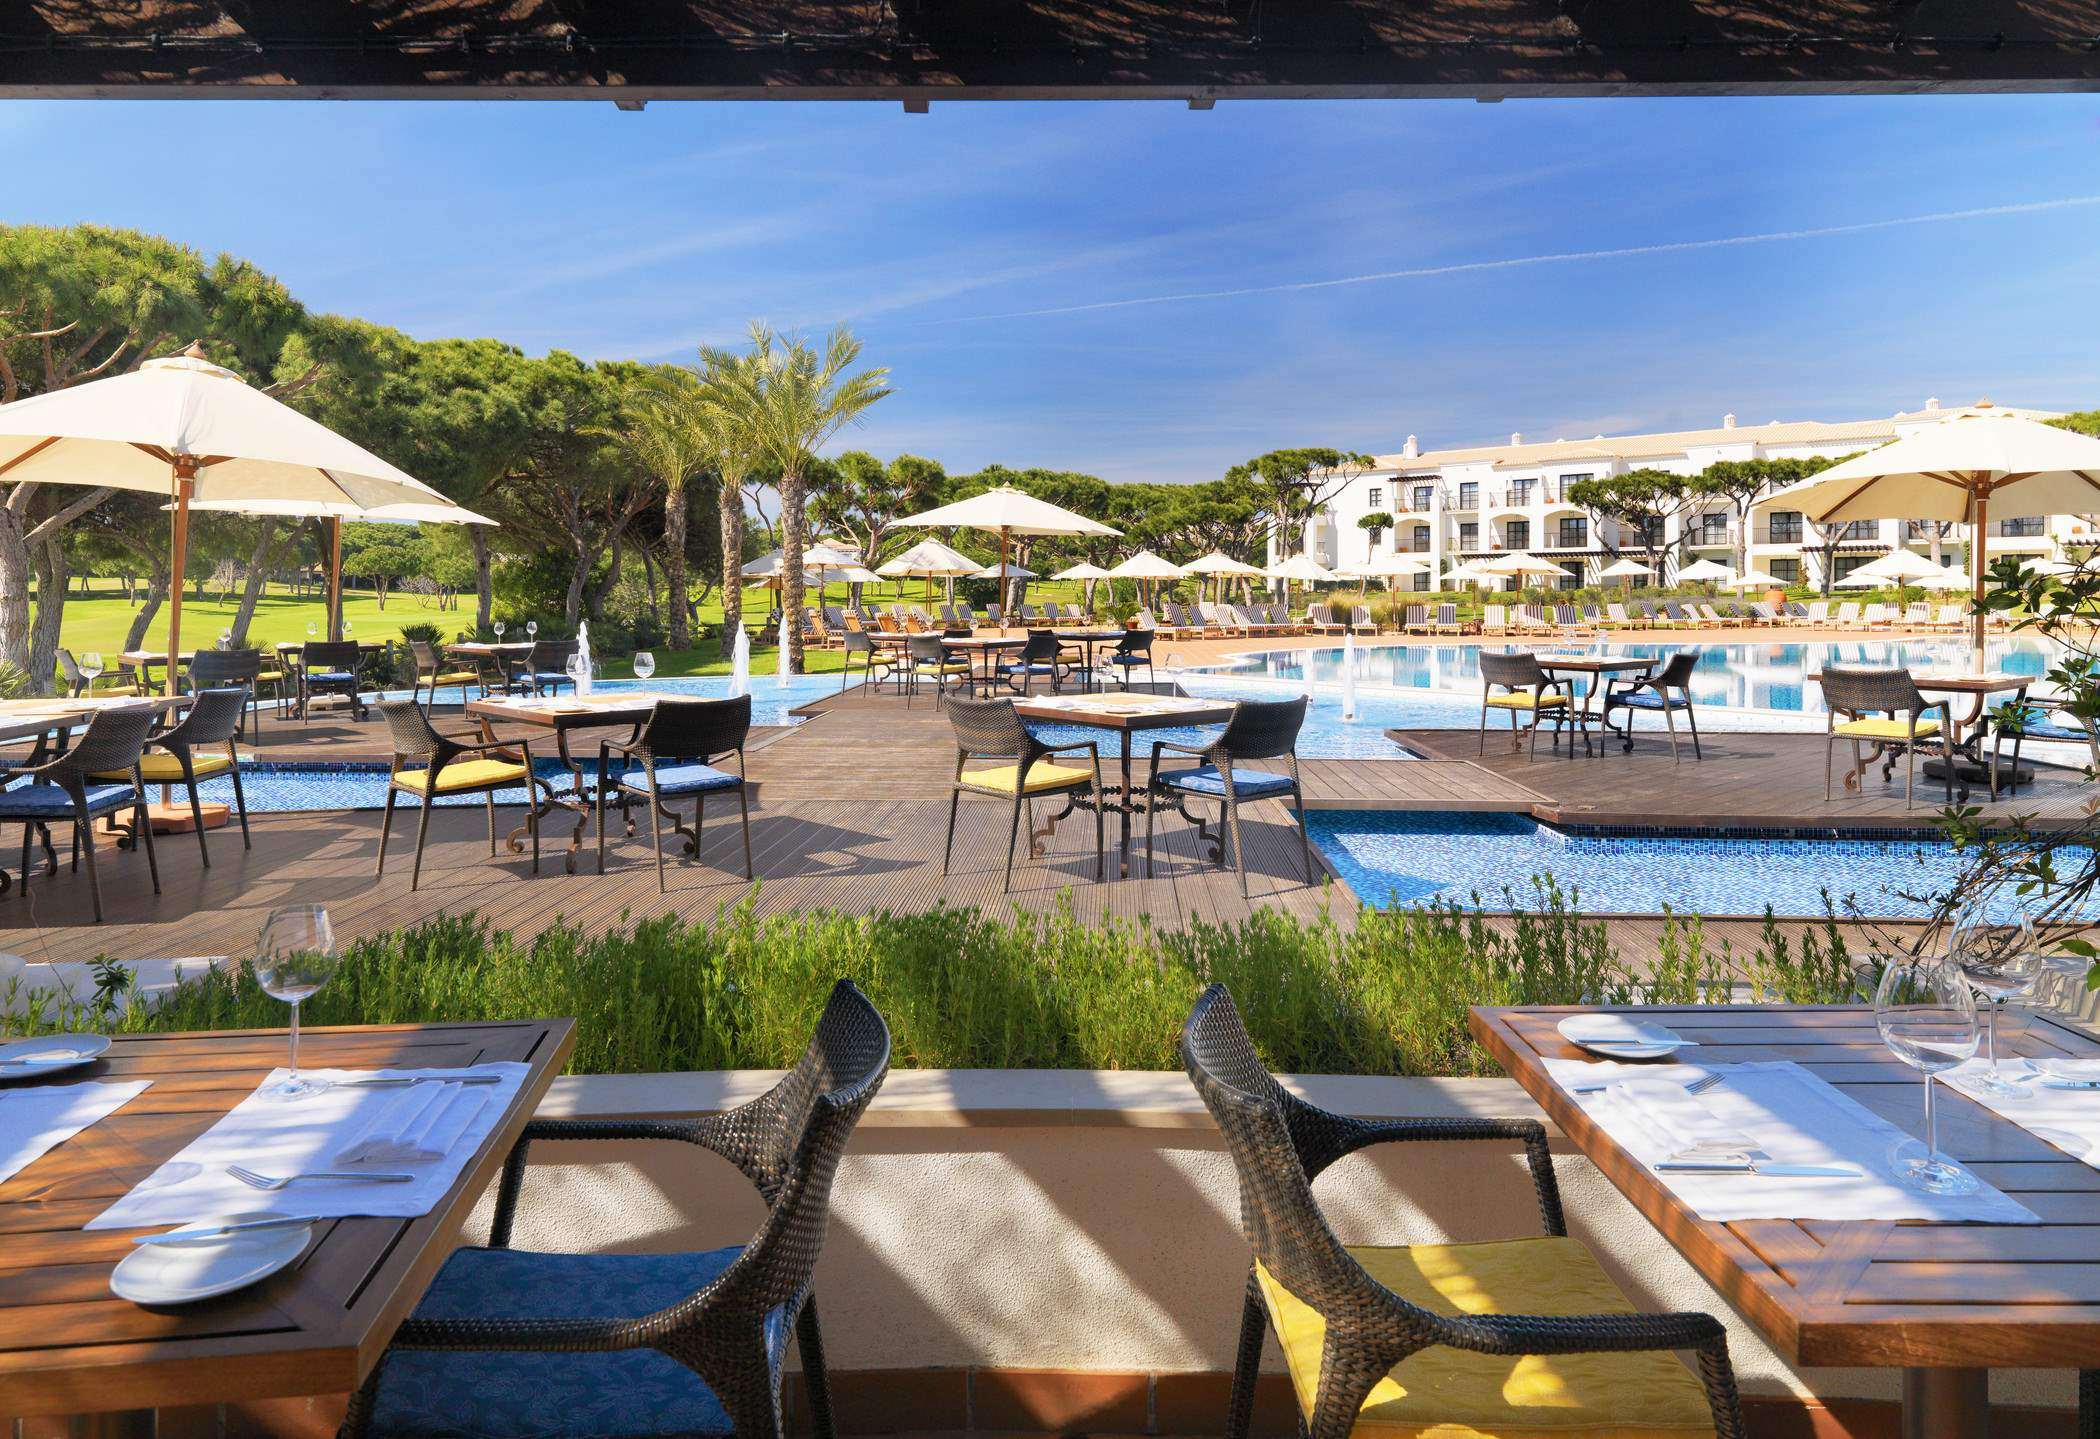 Pine Cliffs Gardens, Two Bedroom Suite, S/C Basis, 2 bedroom apartment in Pine Cliffs Resort, Algarve Photo #37